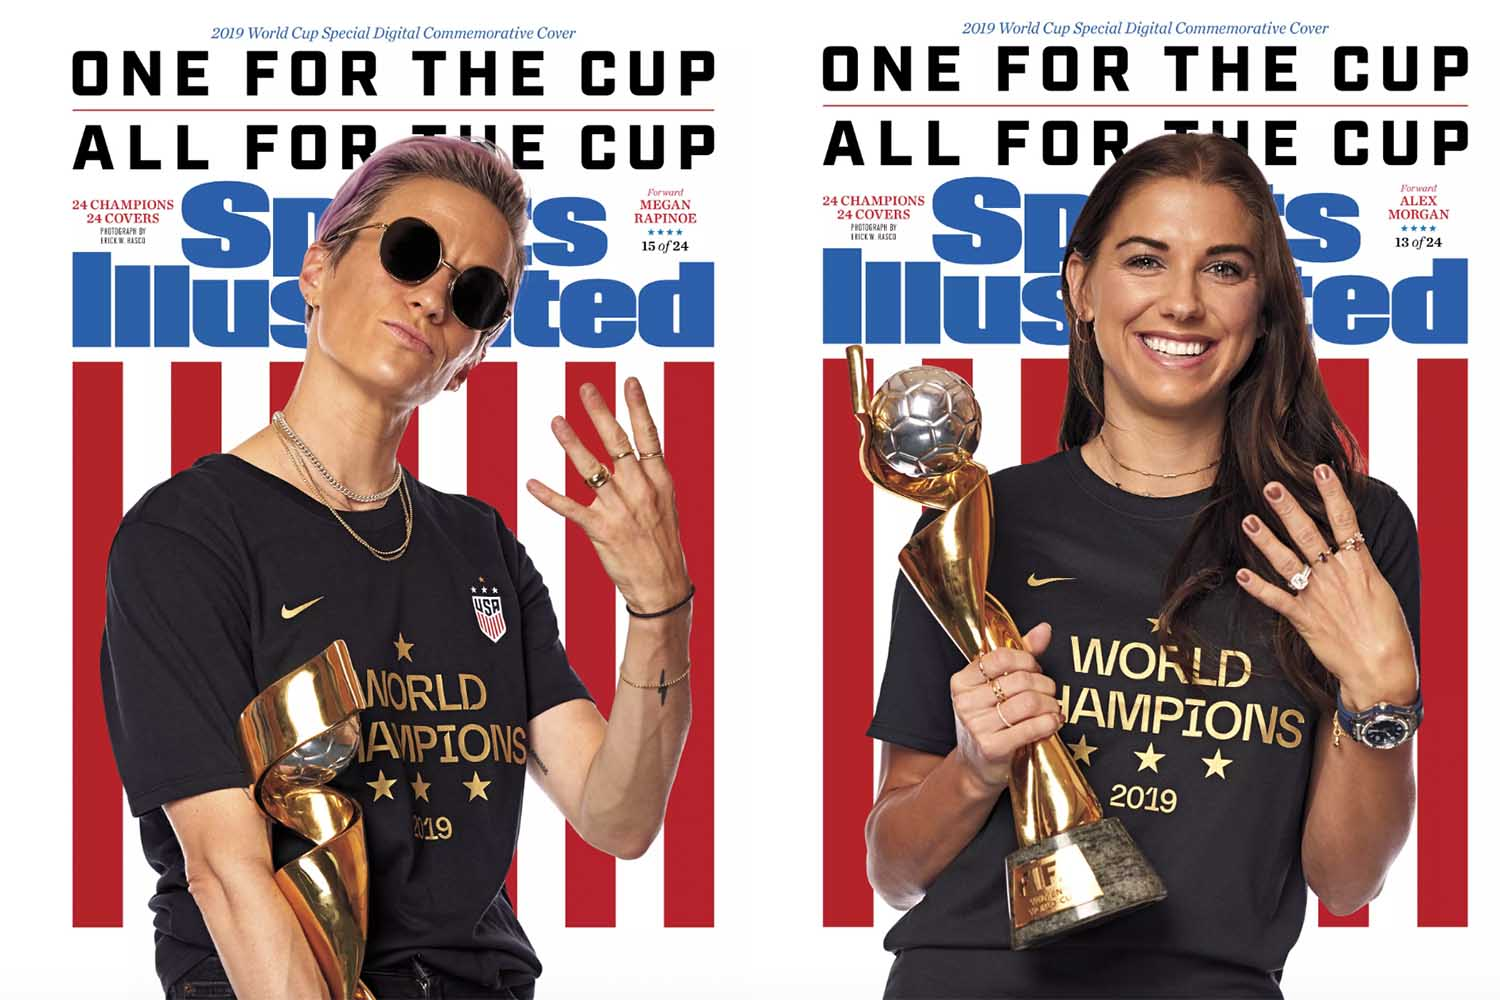 Megan Rapinoe and Alex Morgan's SI covers. The two combined for 12 of the USA's 26 goals in France.